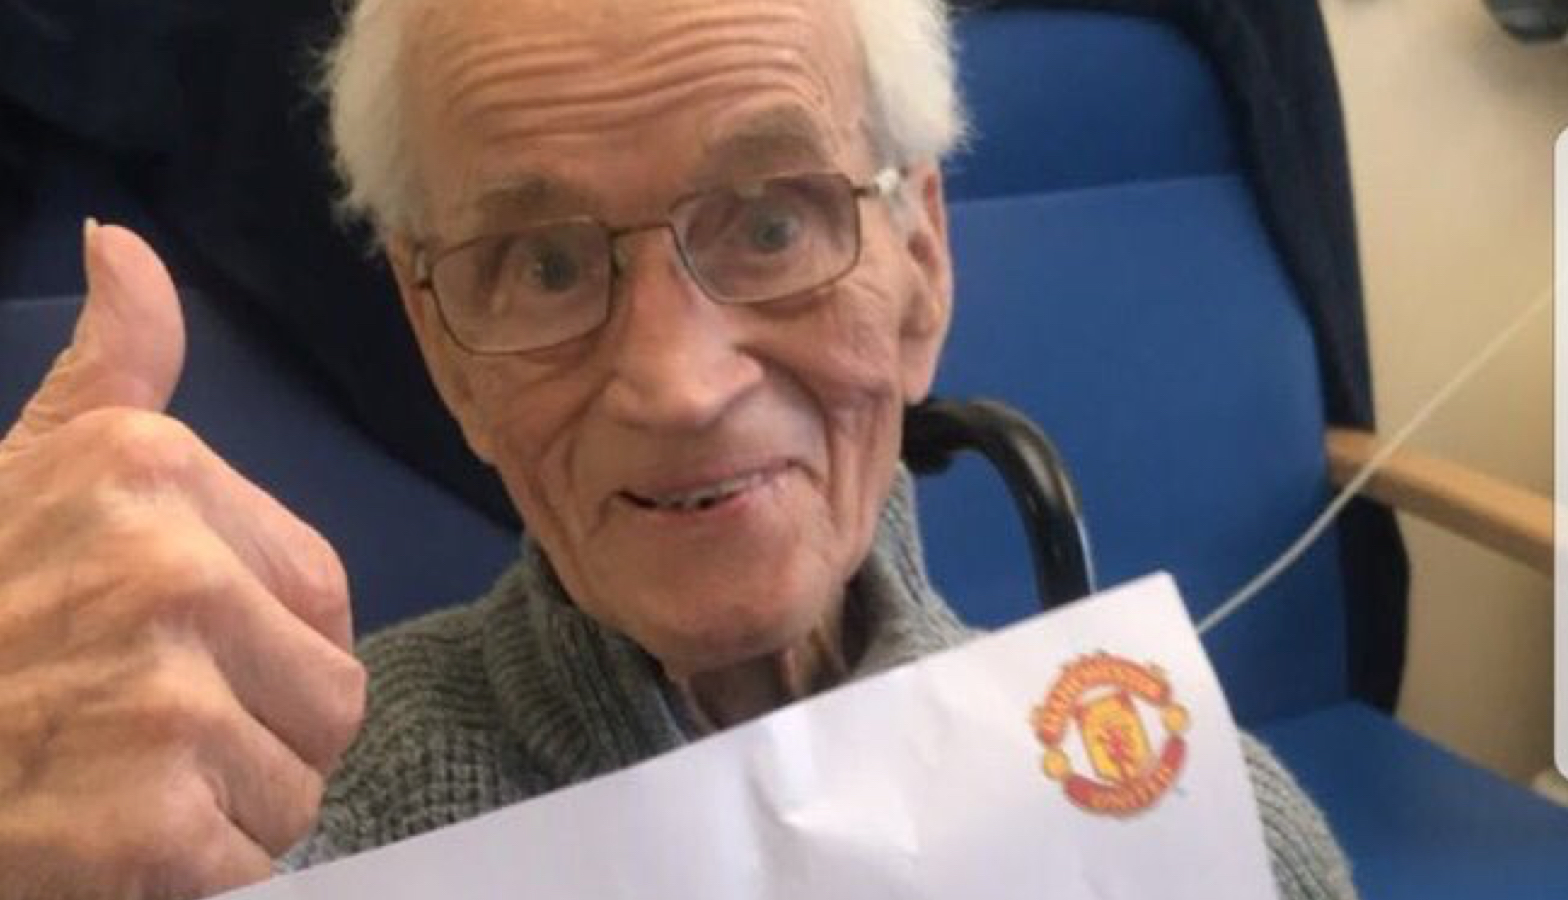 José Mourinho Sends Touching Letter To 94 Year Old Manchester United Fan